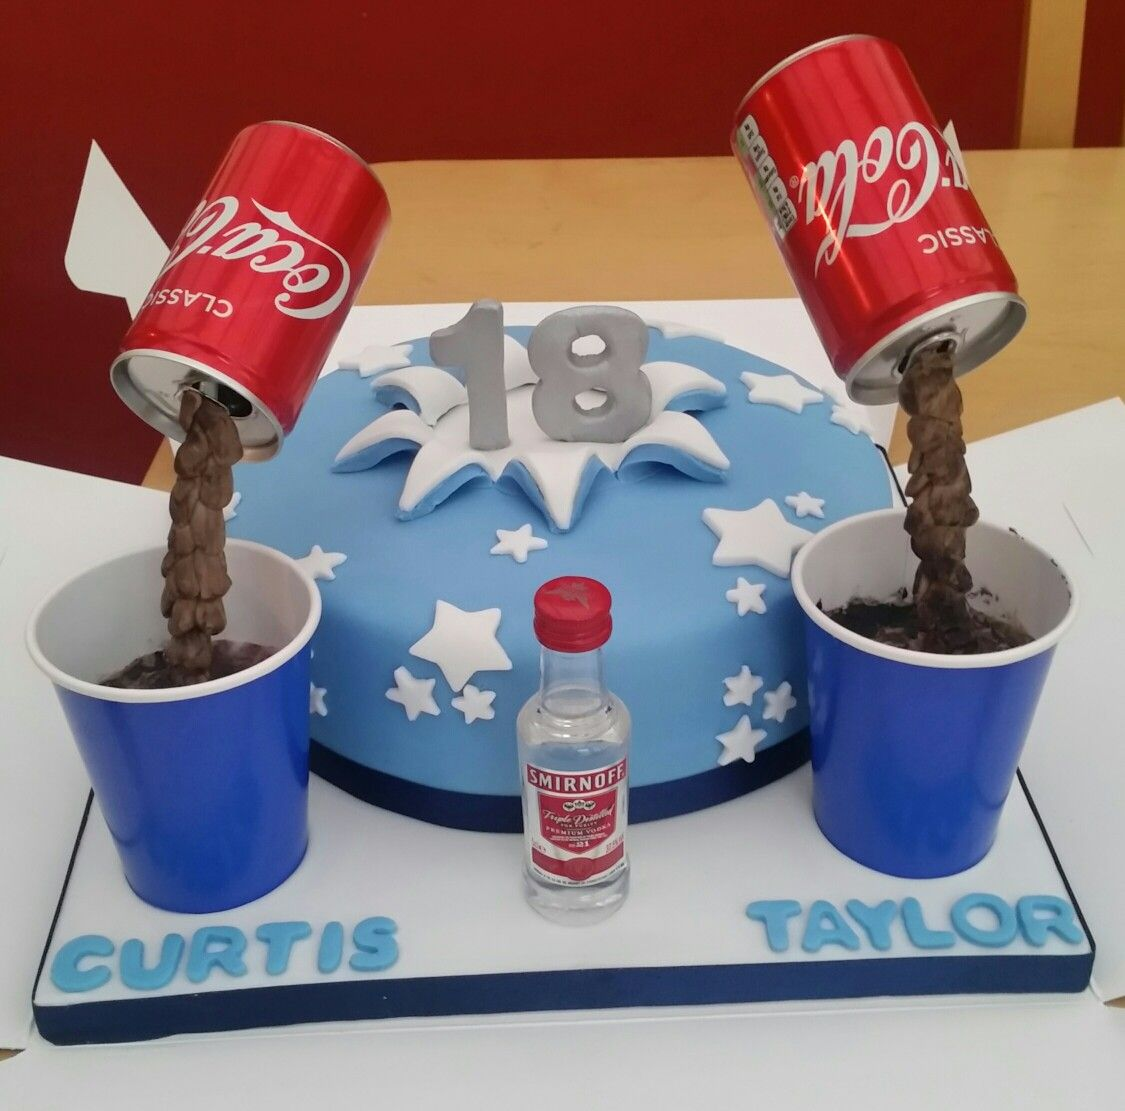 18th Birthday Cake With Alcohol Drink Pouring Cake Toppers Cakes